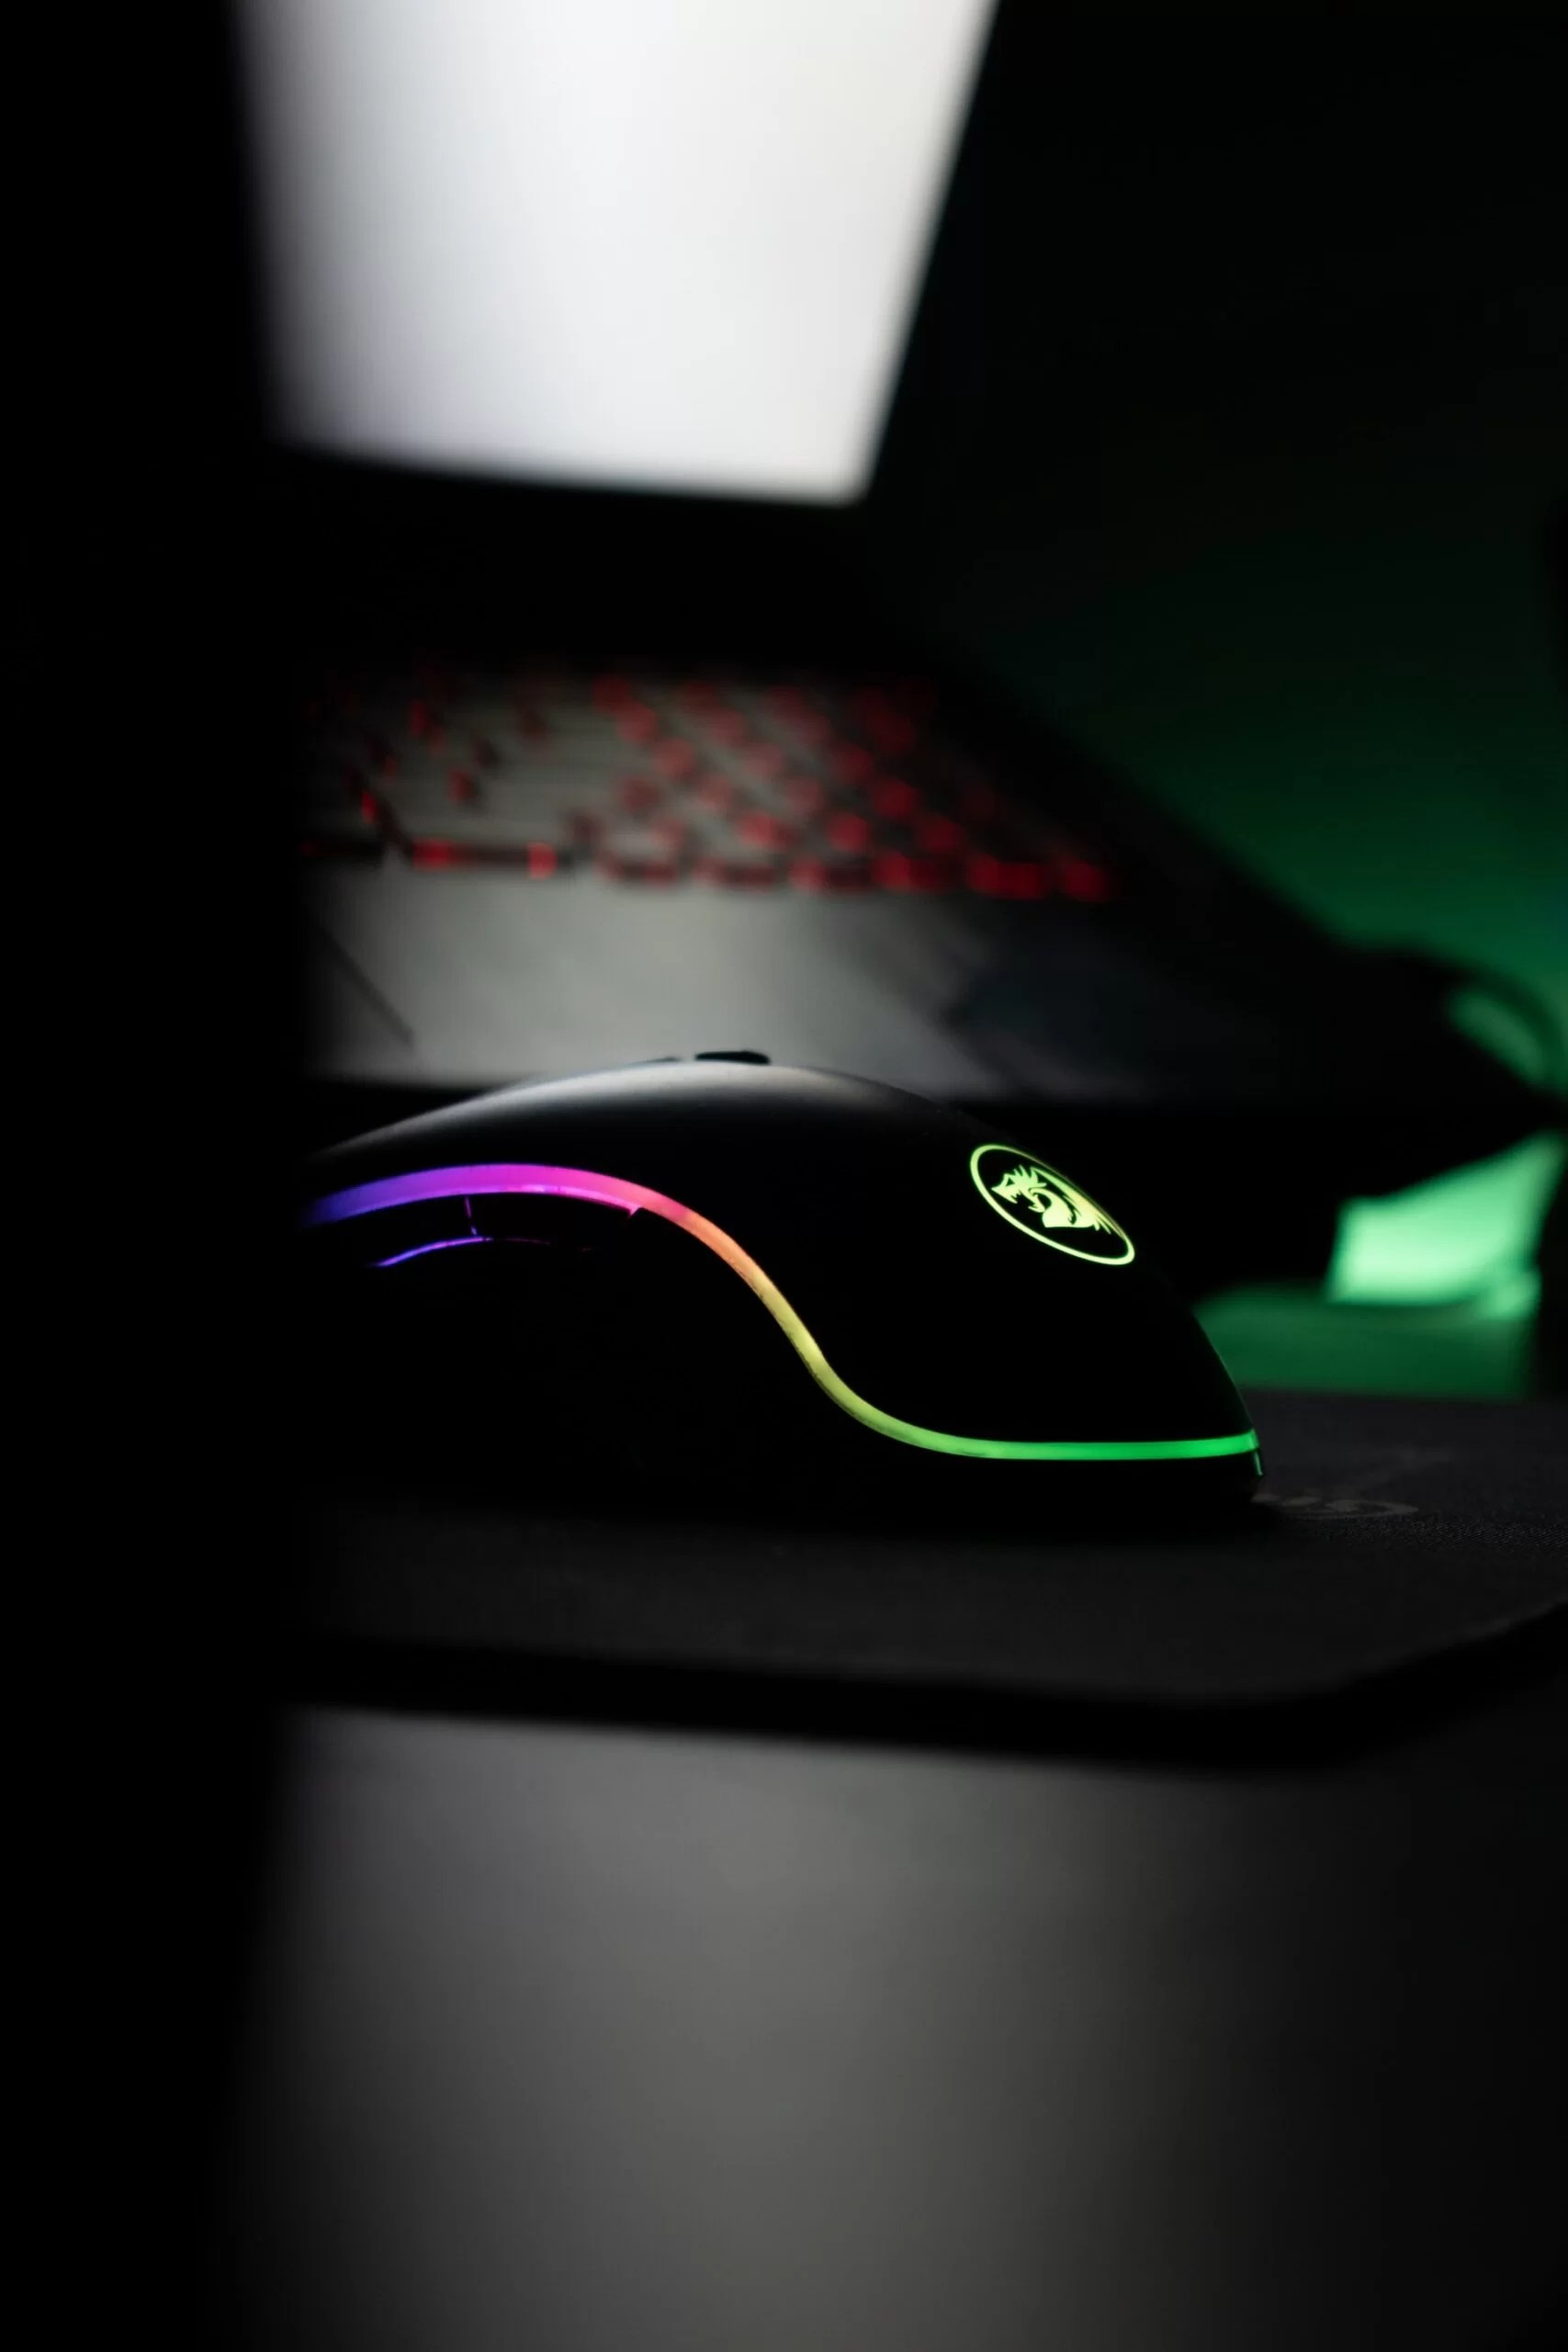 nischal kanishk itYT1aGMXqA unsplash scaled thekoffeetable mouse,gaming mouse,graphic mouse